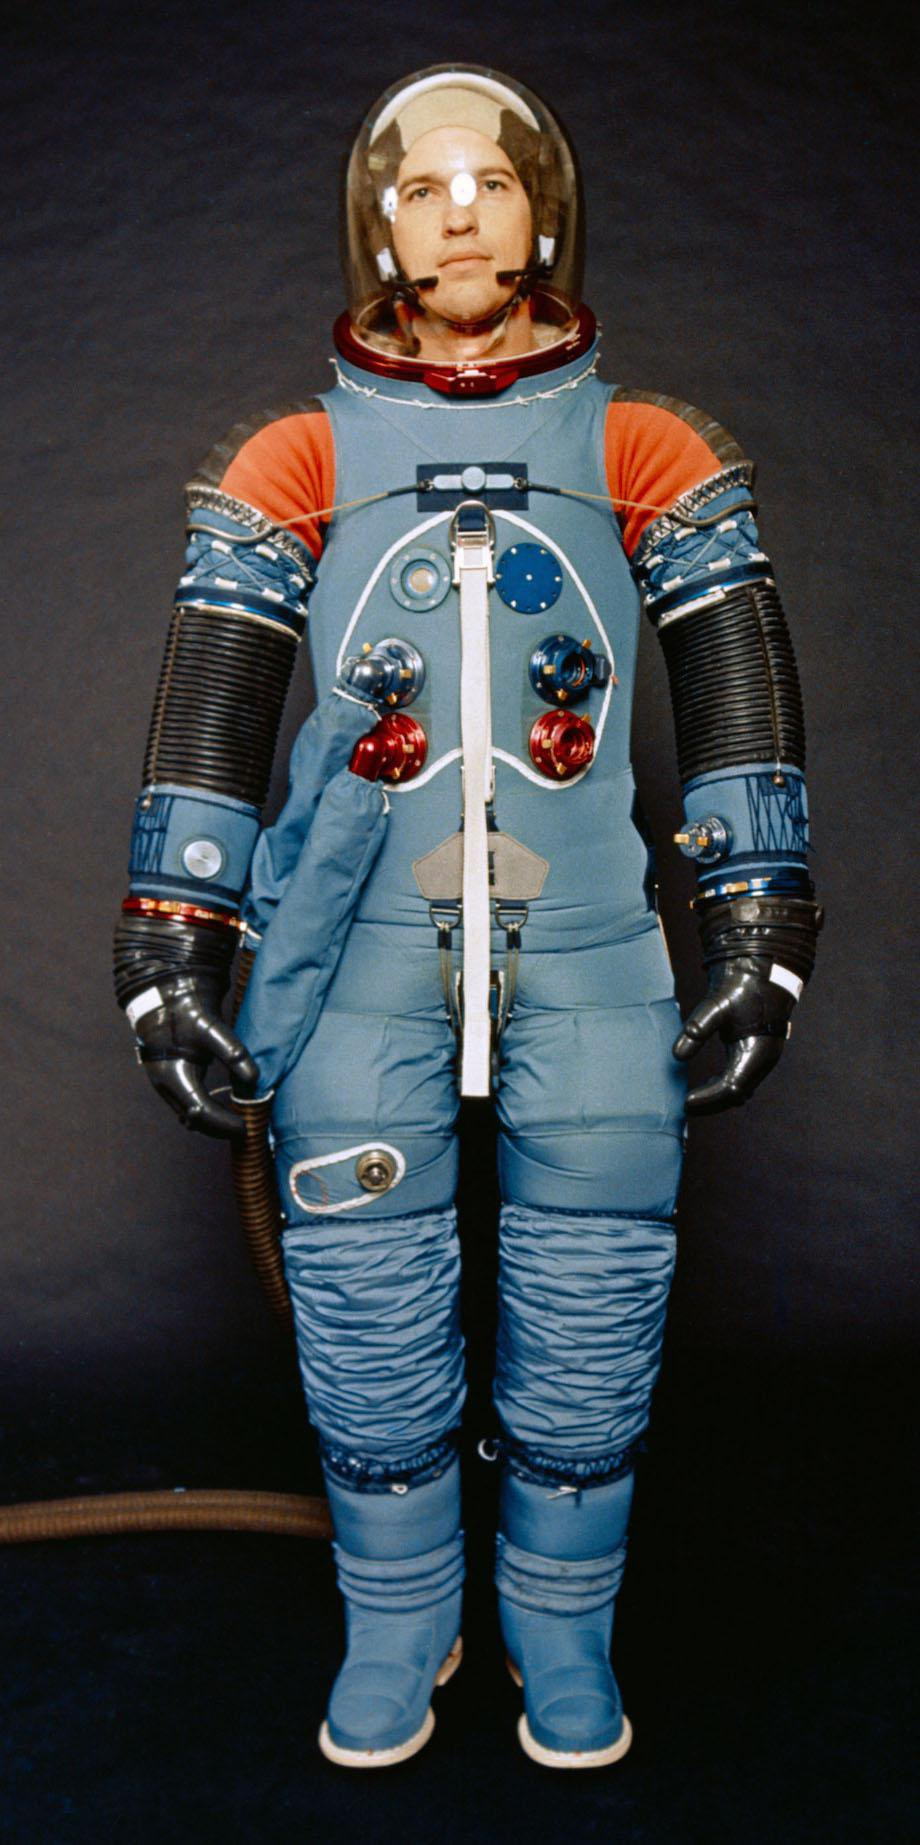 check-out-the-evolution-of-the-space-suit-41-hq-photos-17